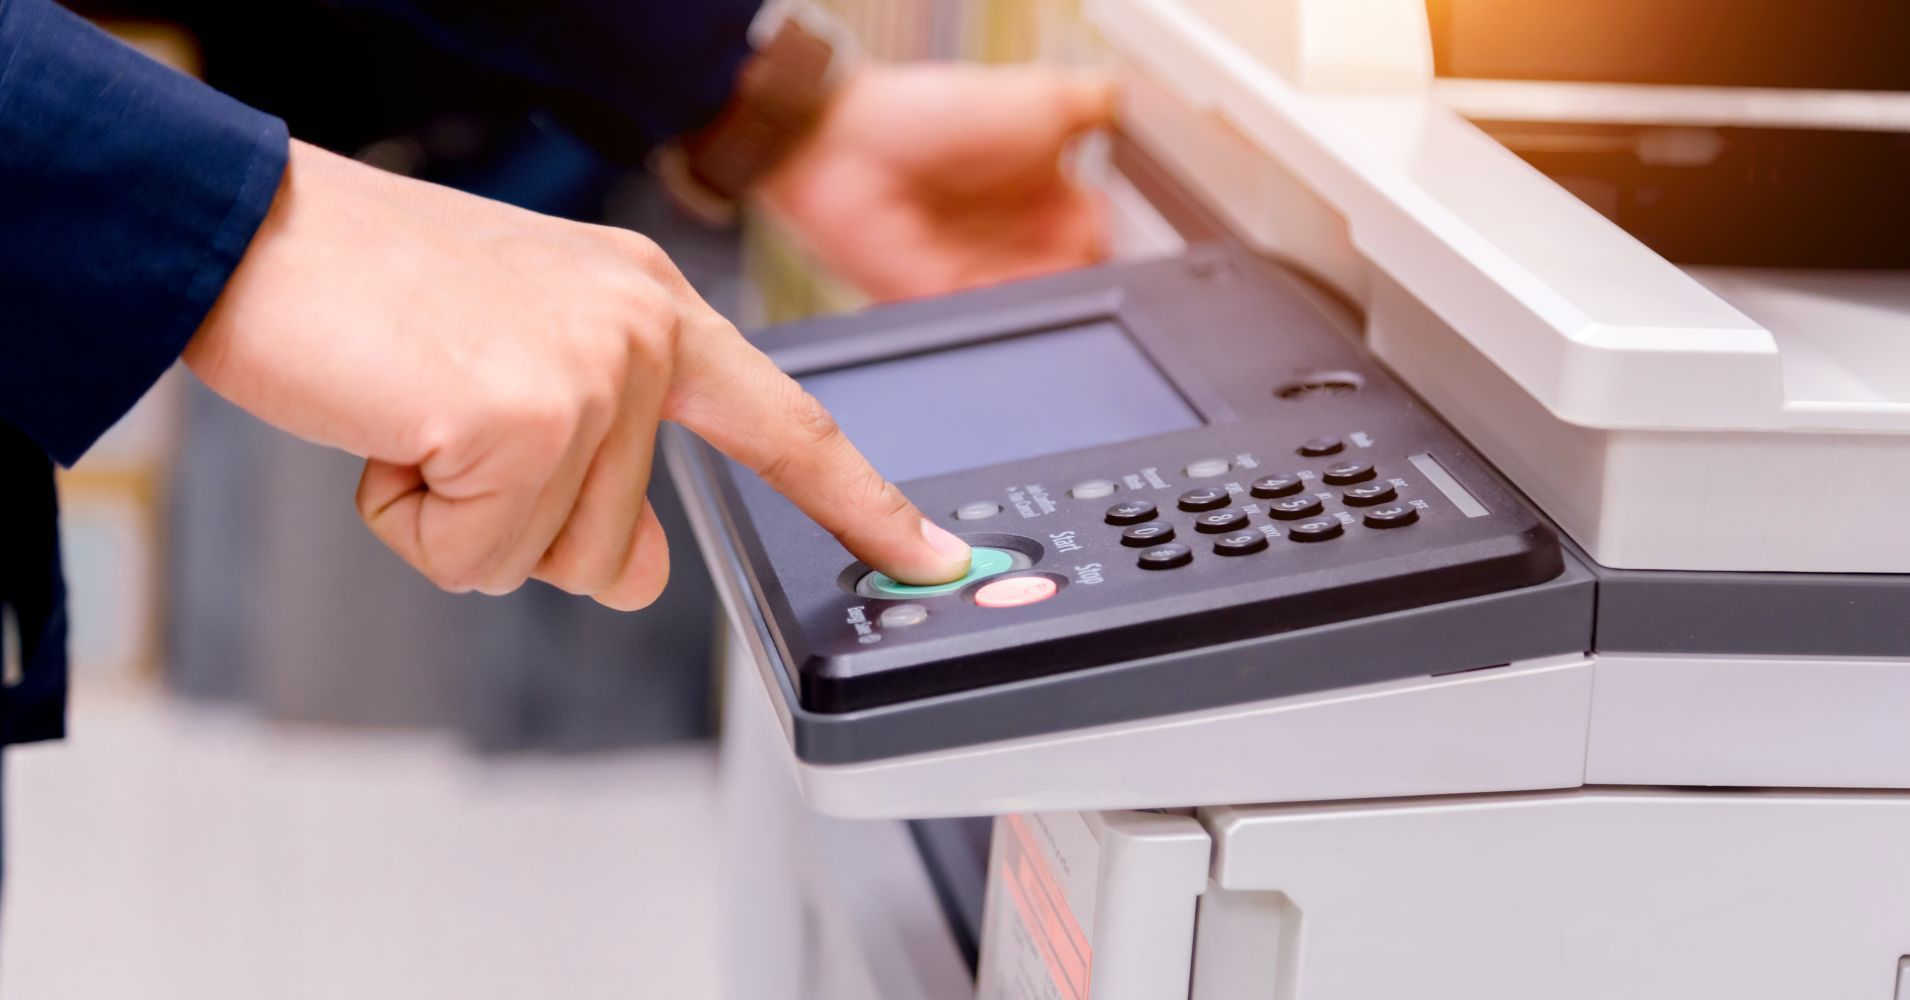 Hackers could use fax machines to take over entire